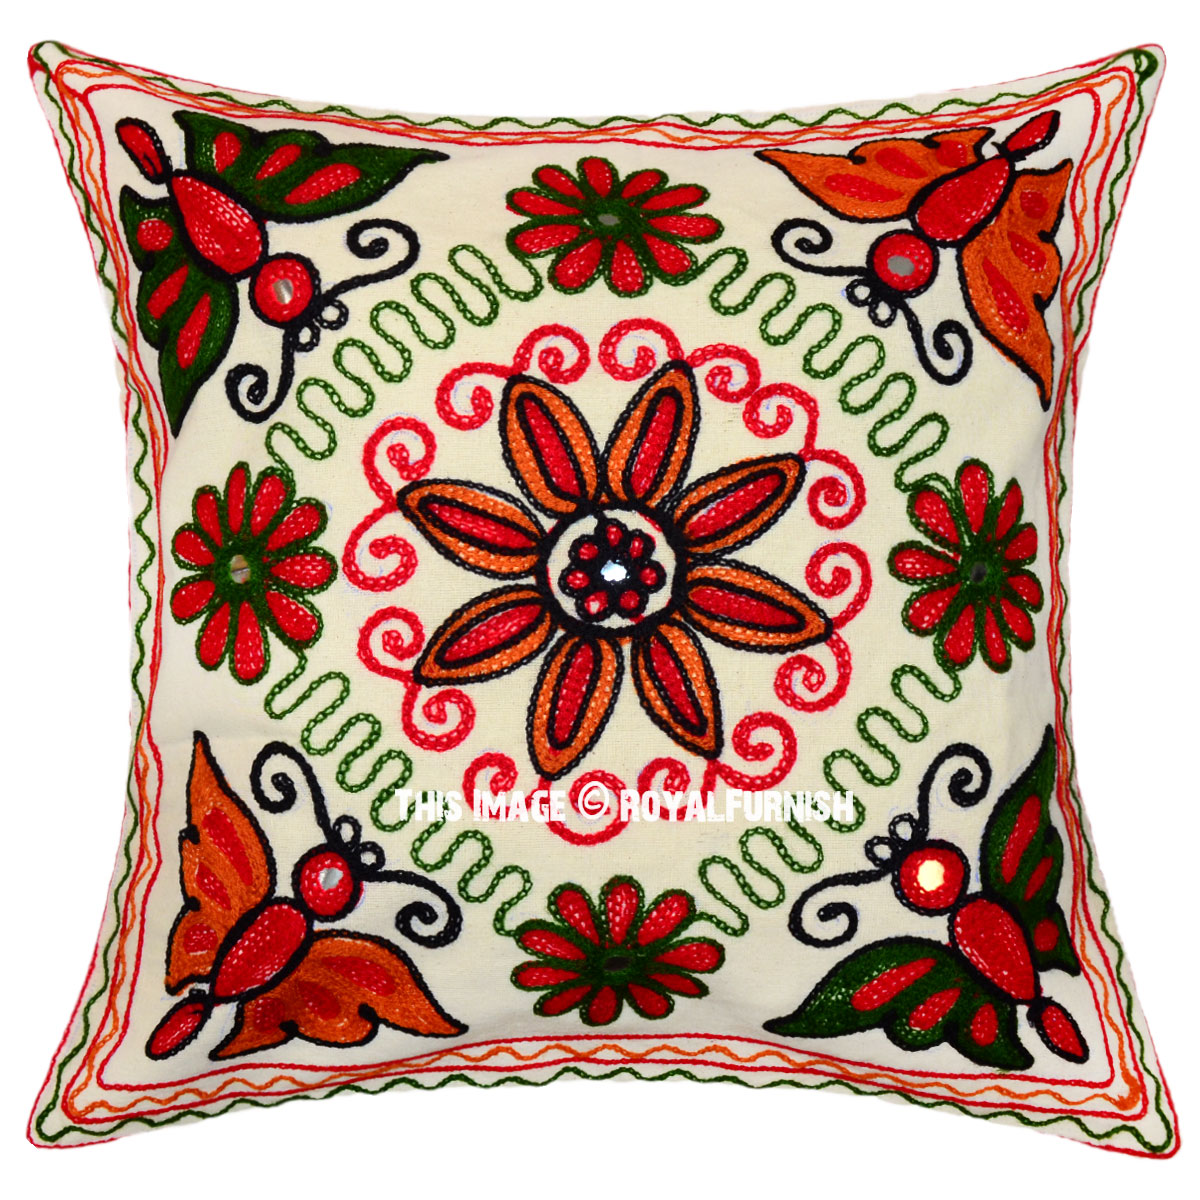 White woolen embroidered floral design indian throw pillow